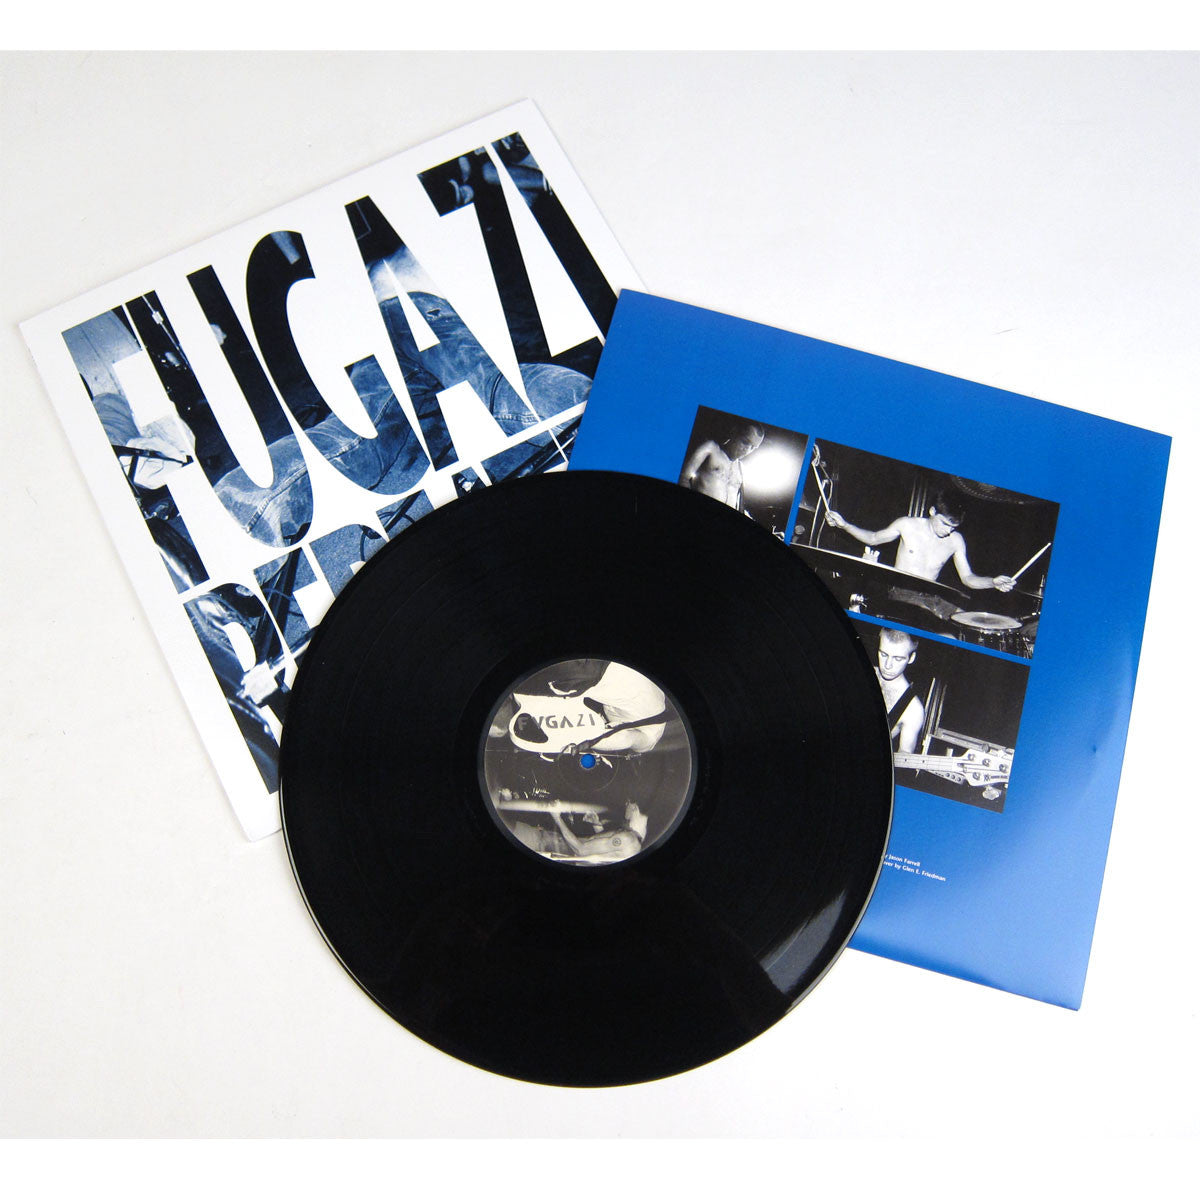 Fugazi repeater free mp3 vinyl lp turntablelab fugazi repeater free mp3 vinyl lp laydown malvernweather Choice Image